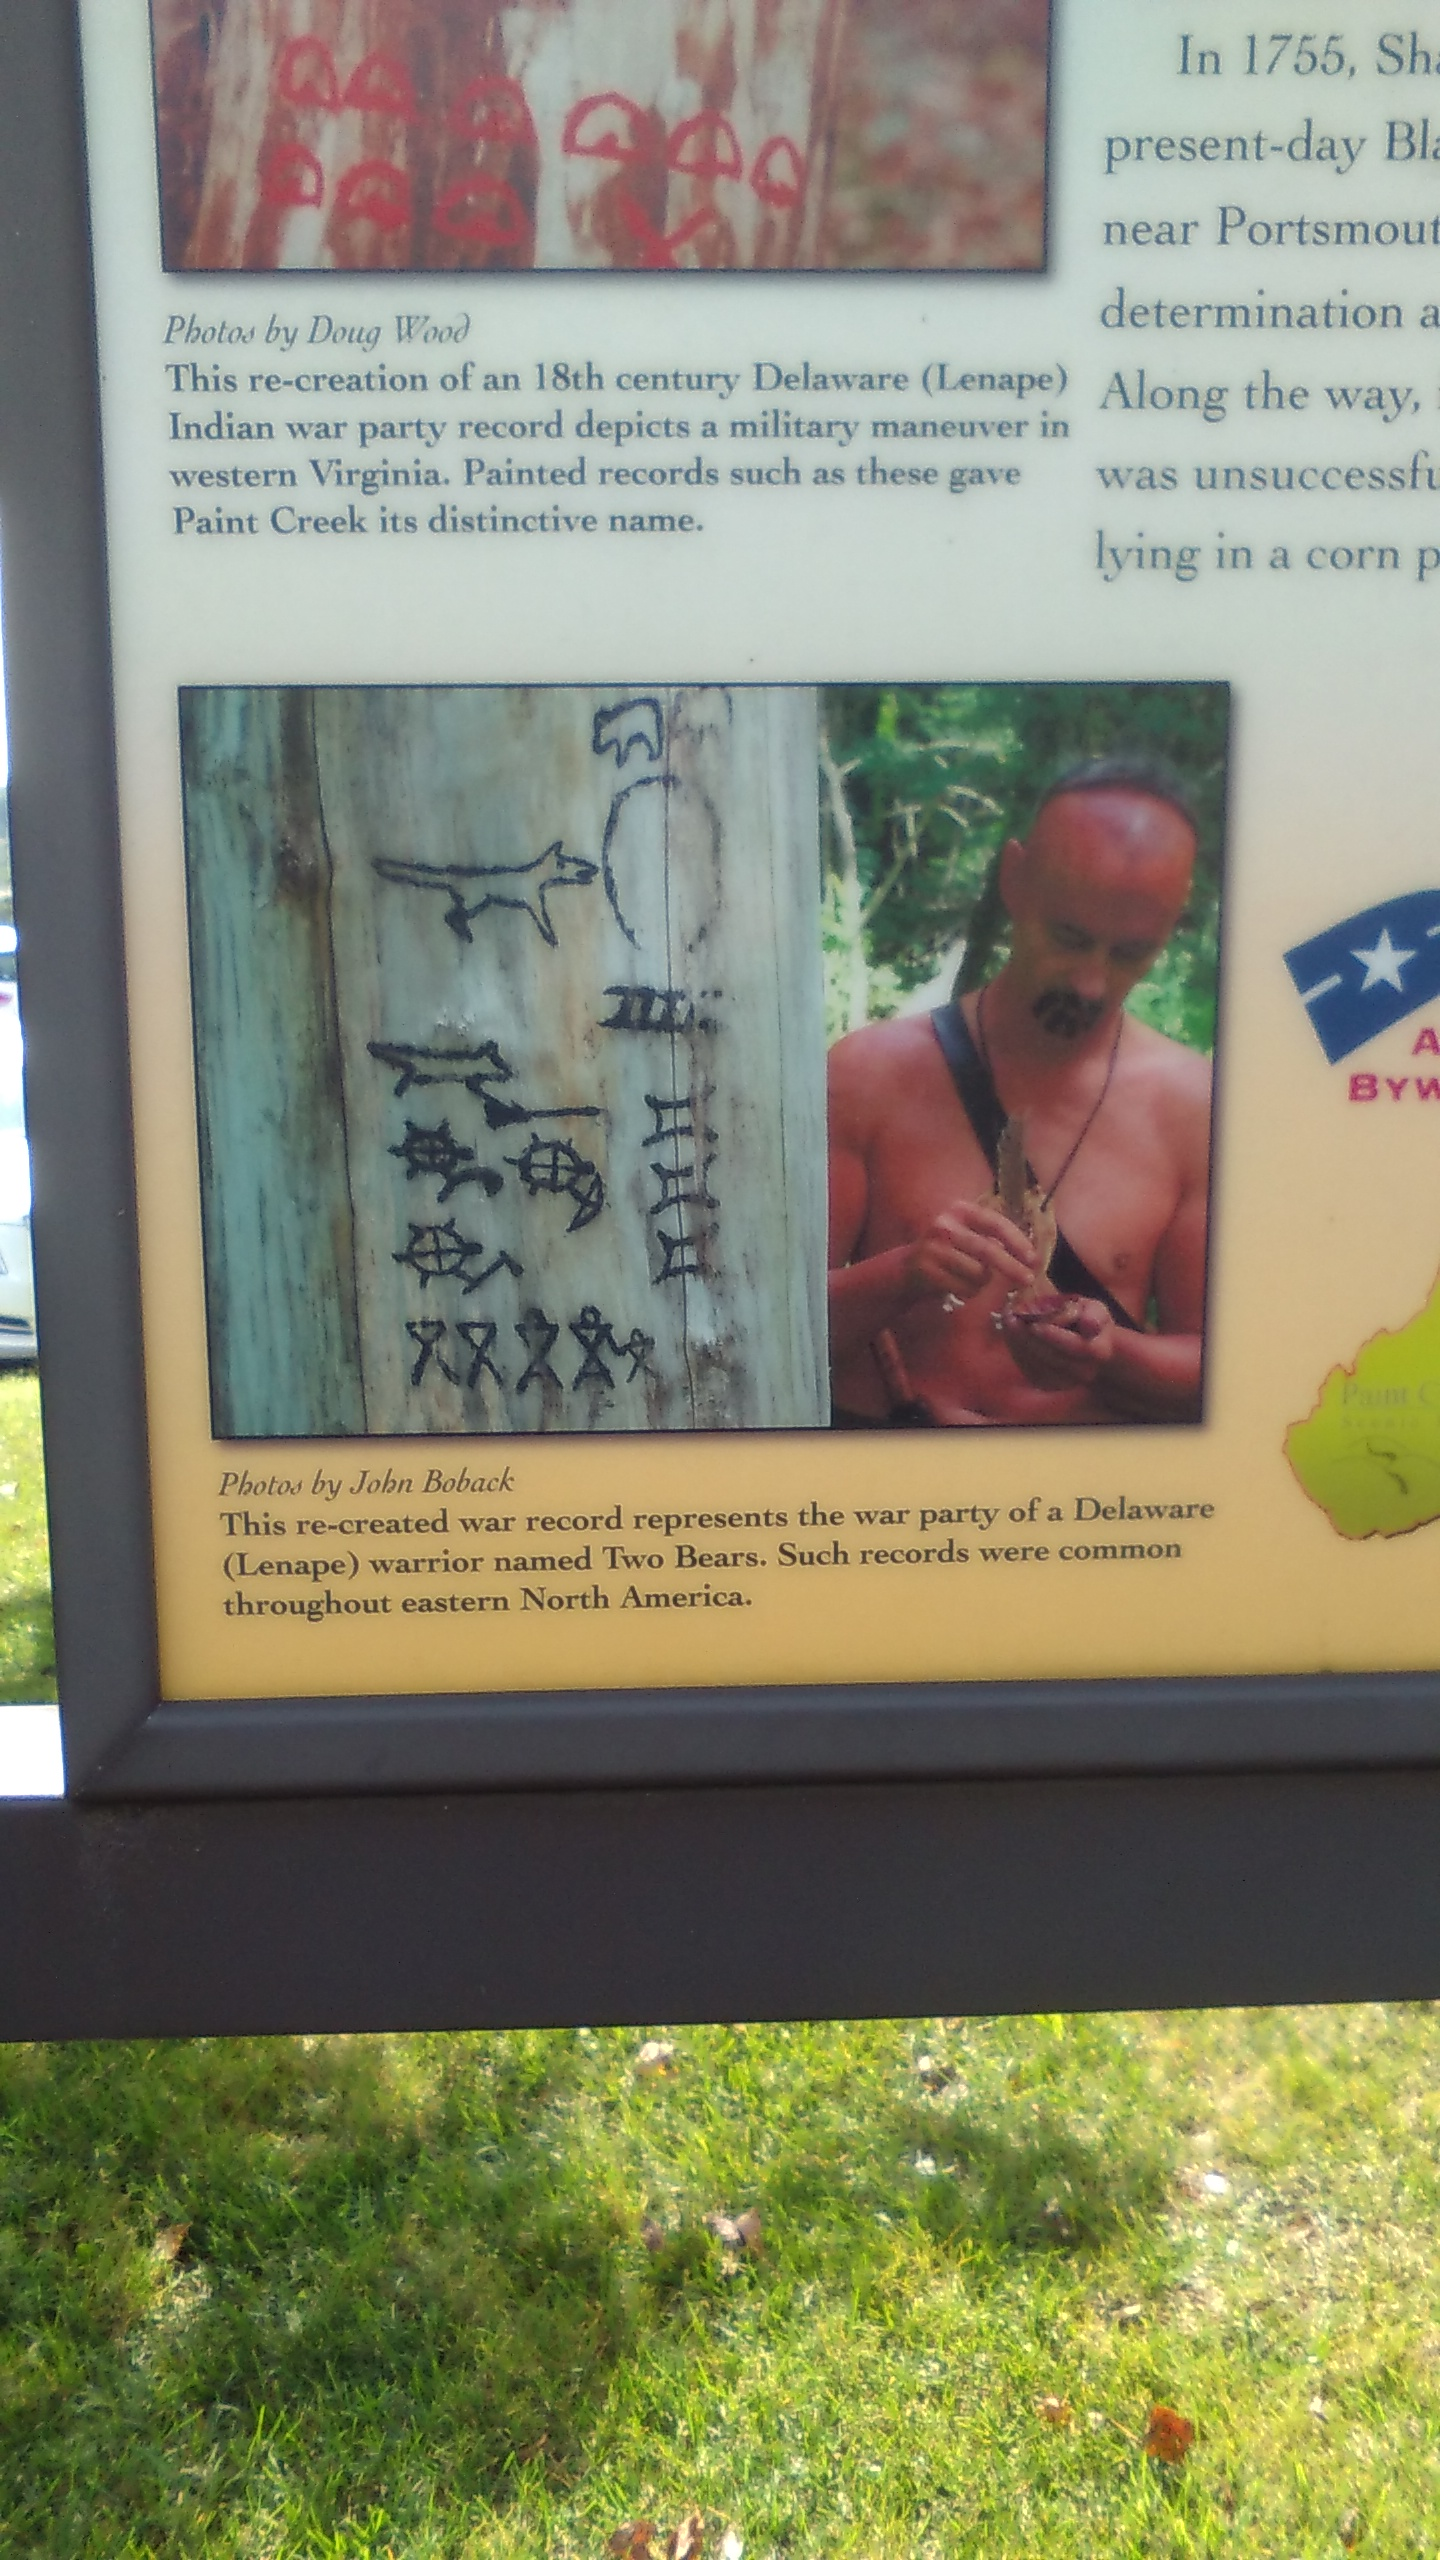 2.This re-created war record represents the war party of a Delaware (Lenape) warrior named Two Bears. Such records were common throughout eastern North America. Photo by Scott George Sept. 2016